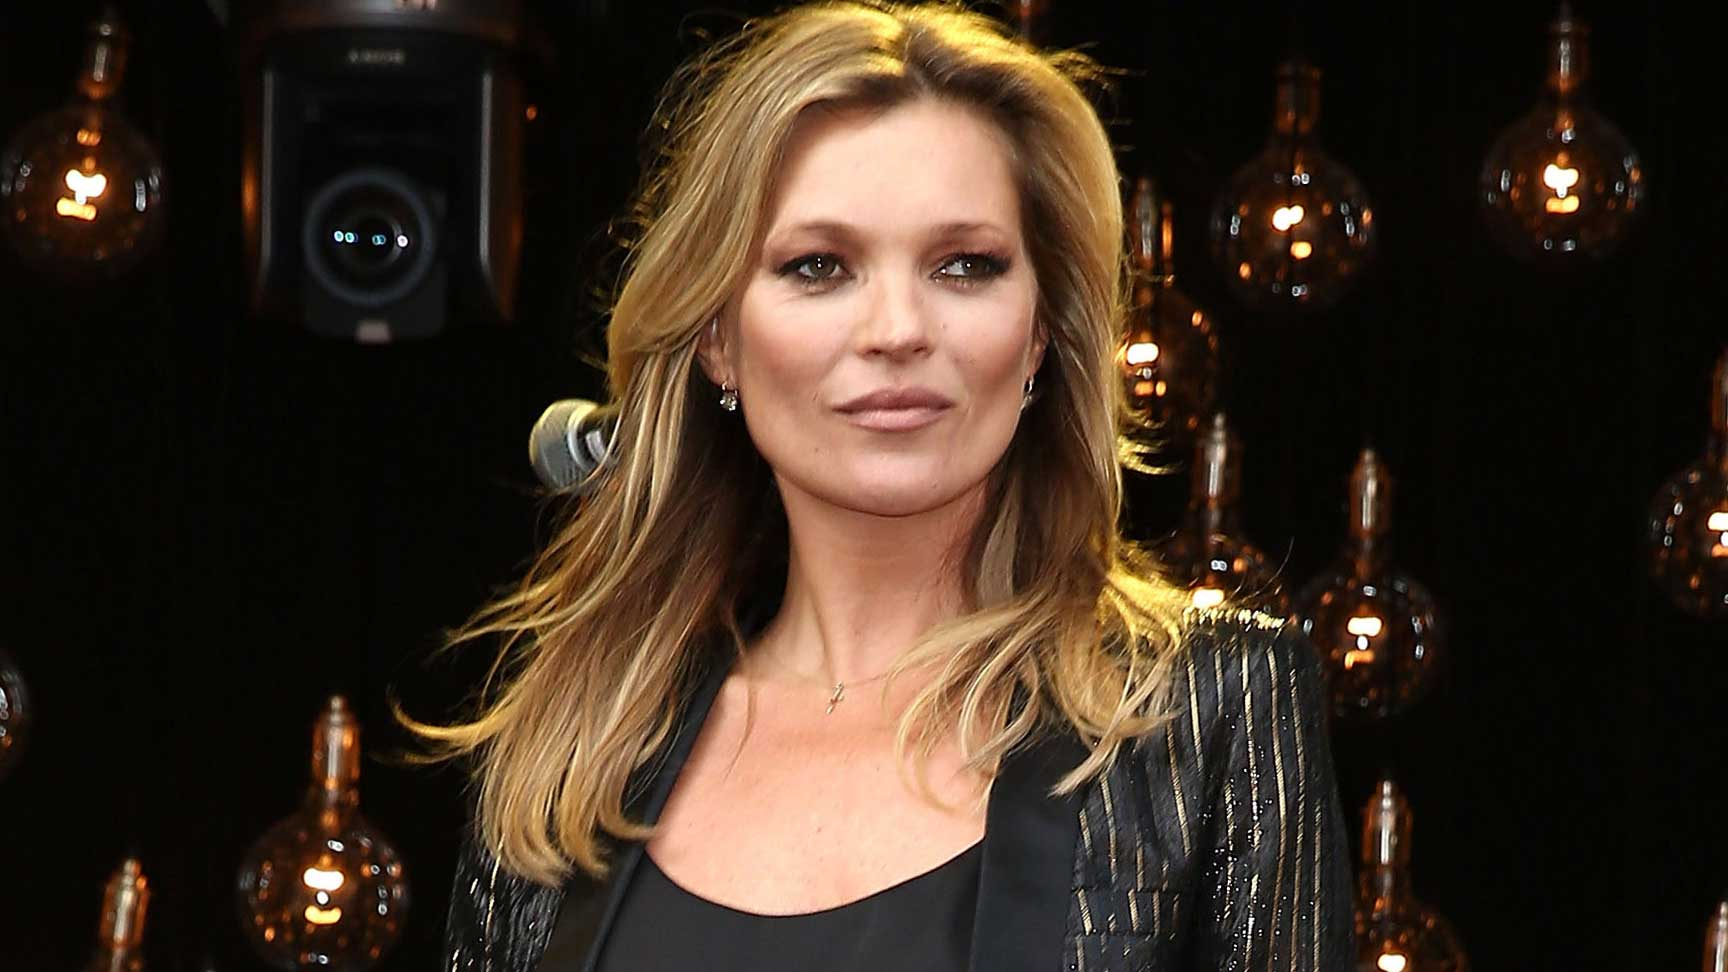 The Kate Moss guide to taking a great passport photo